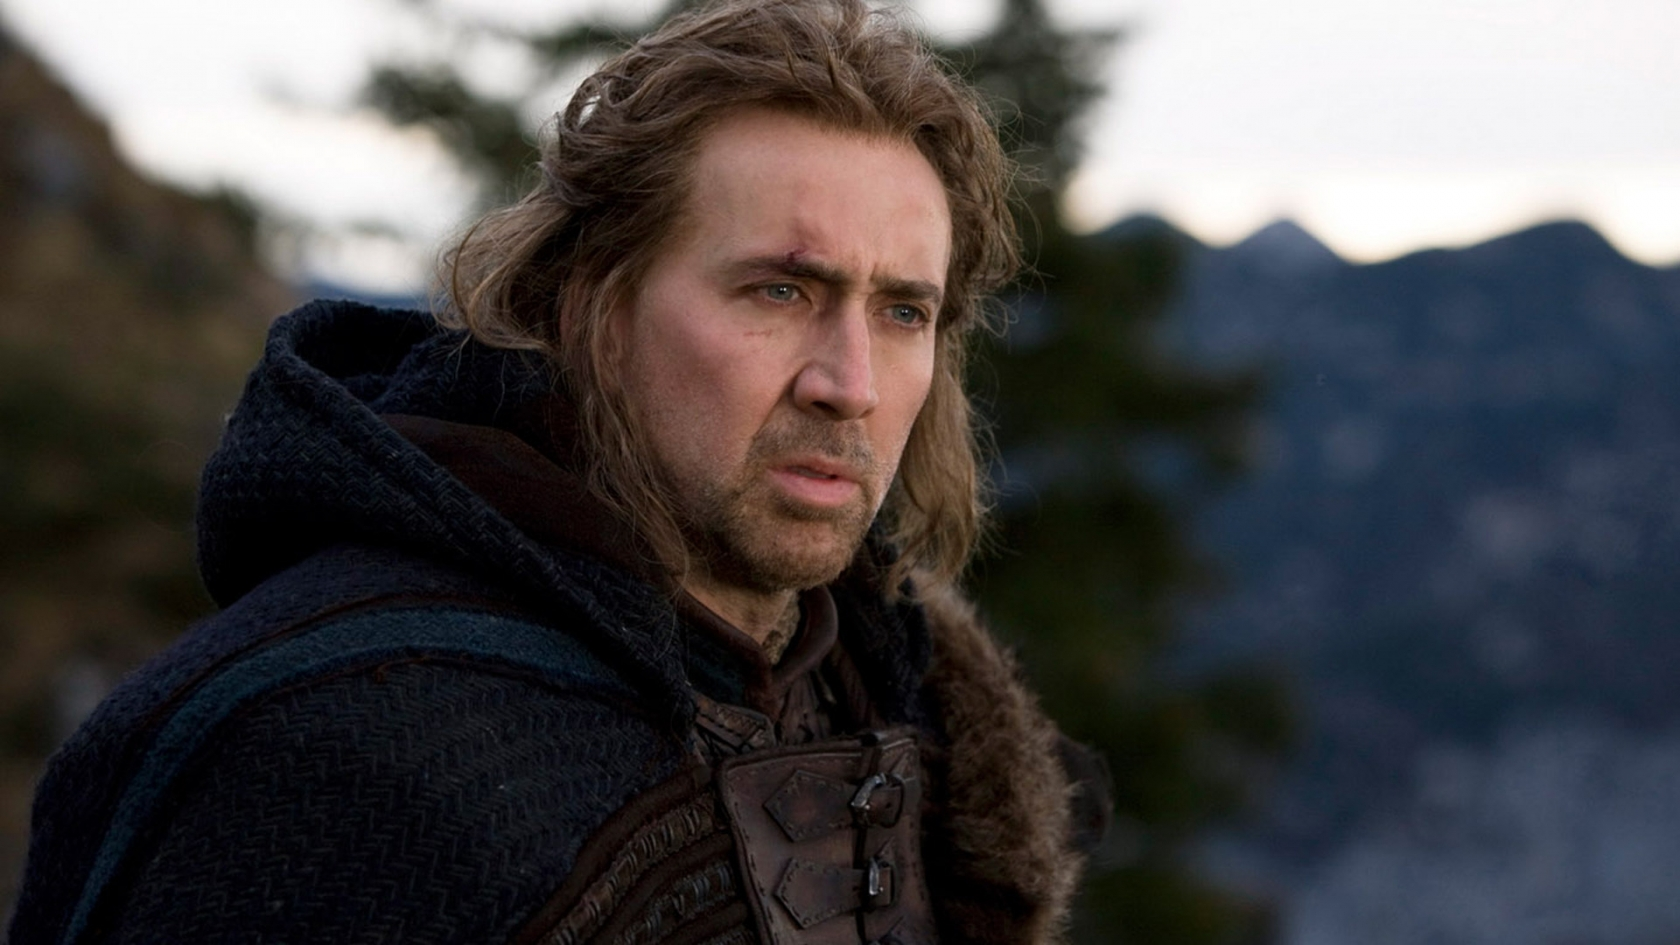 Nicolas Cage for 1680 x 945 HDTV resolution